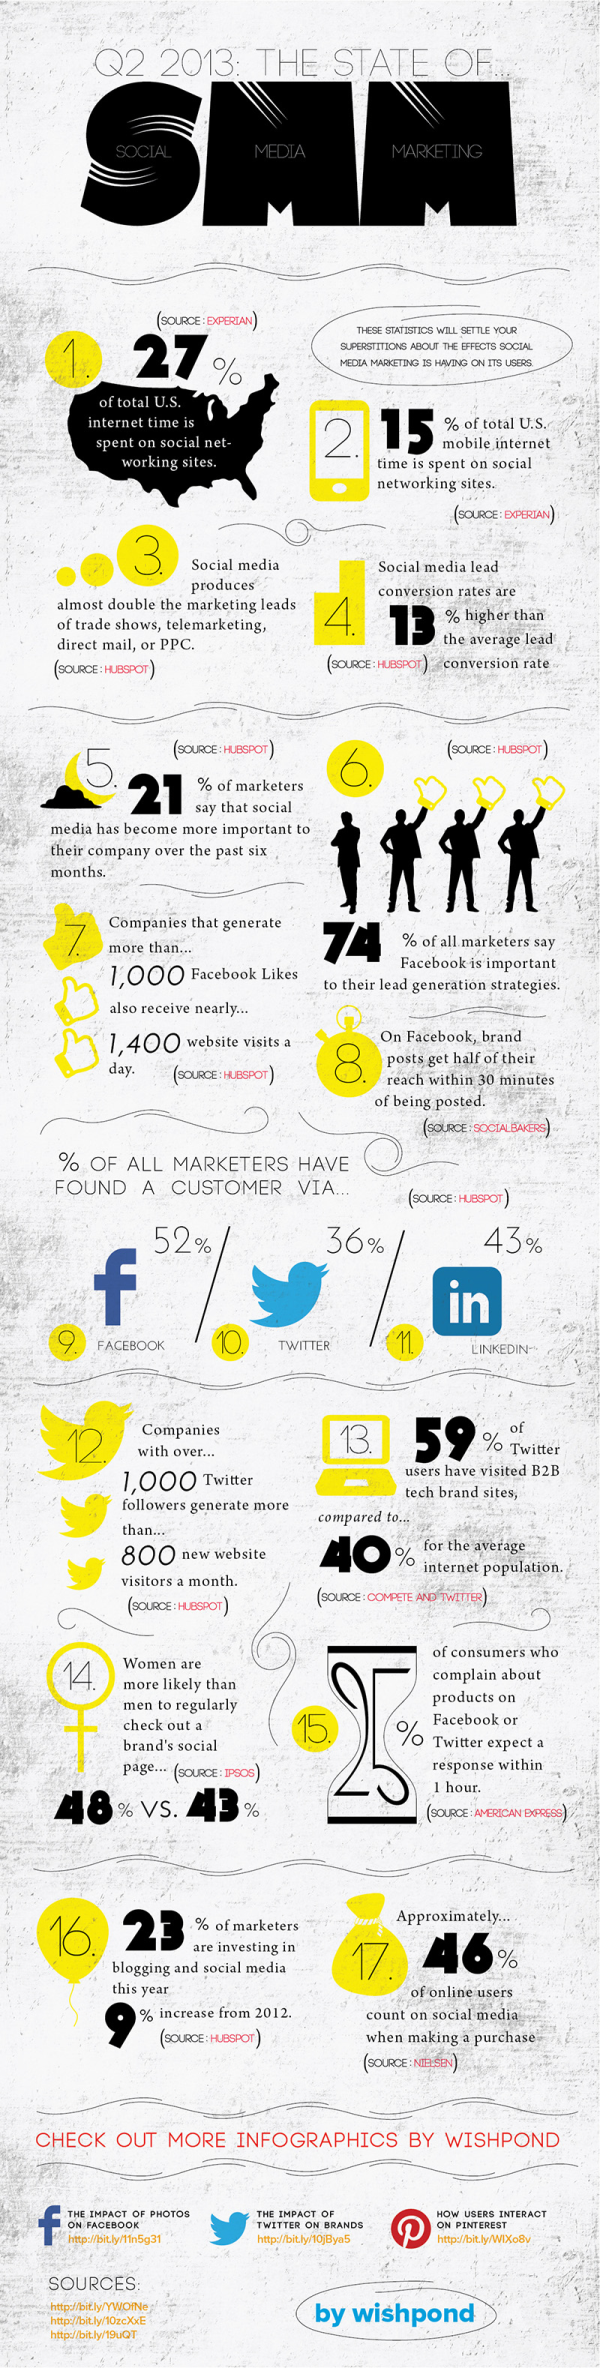 Social Media Marketing in 2013 resized 600